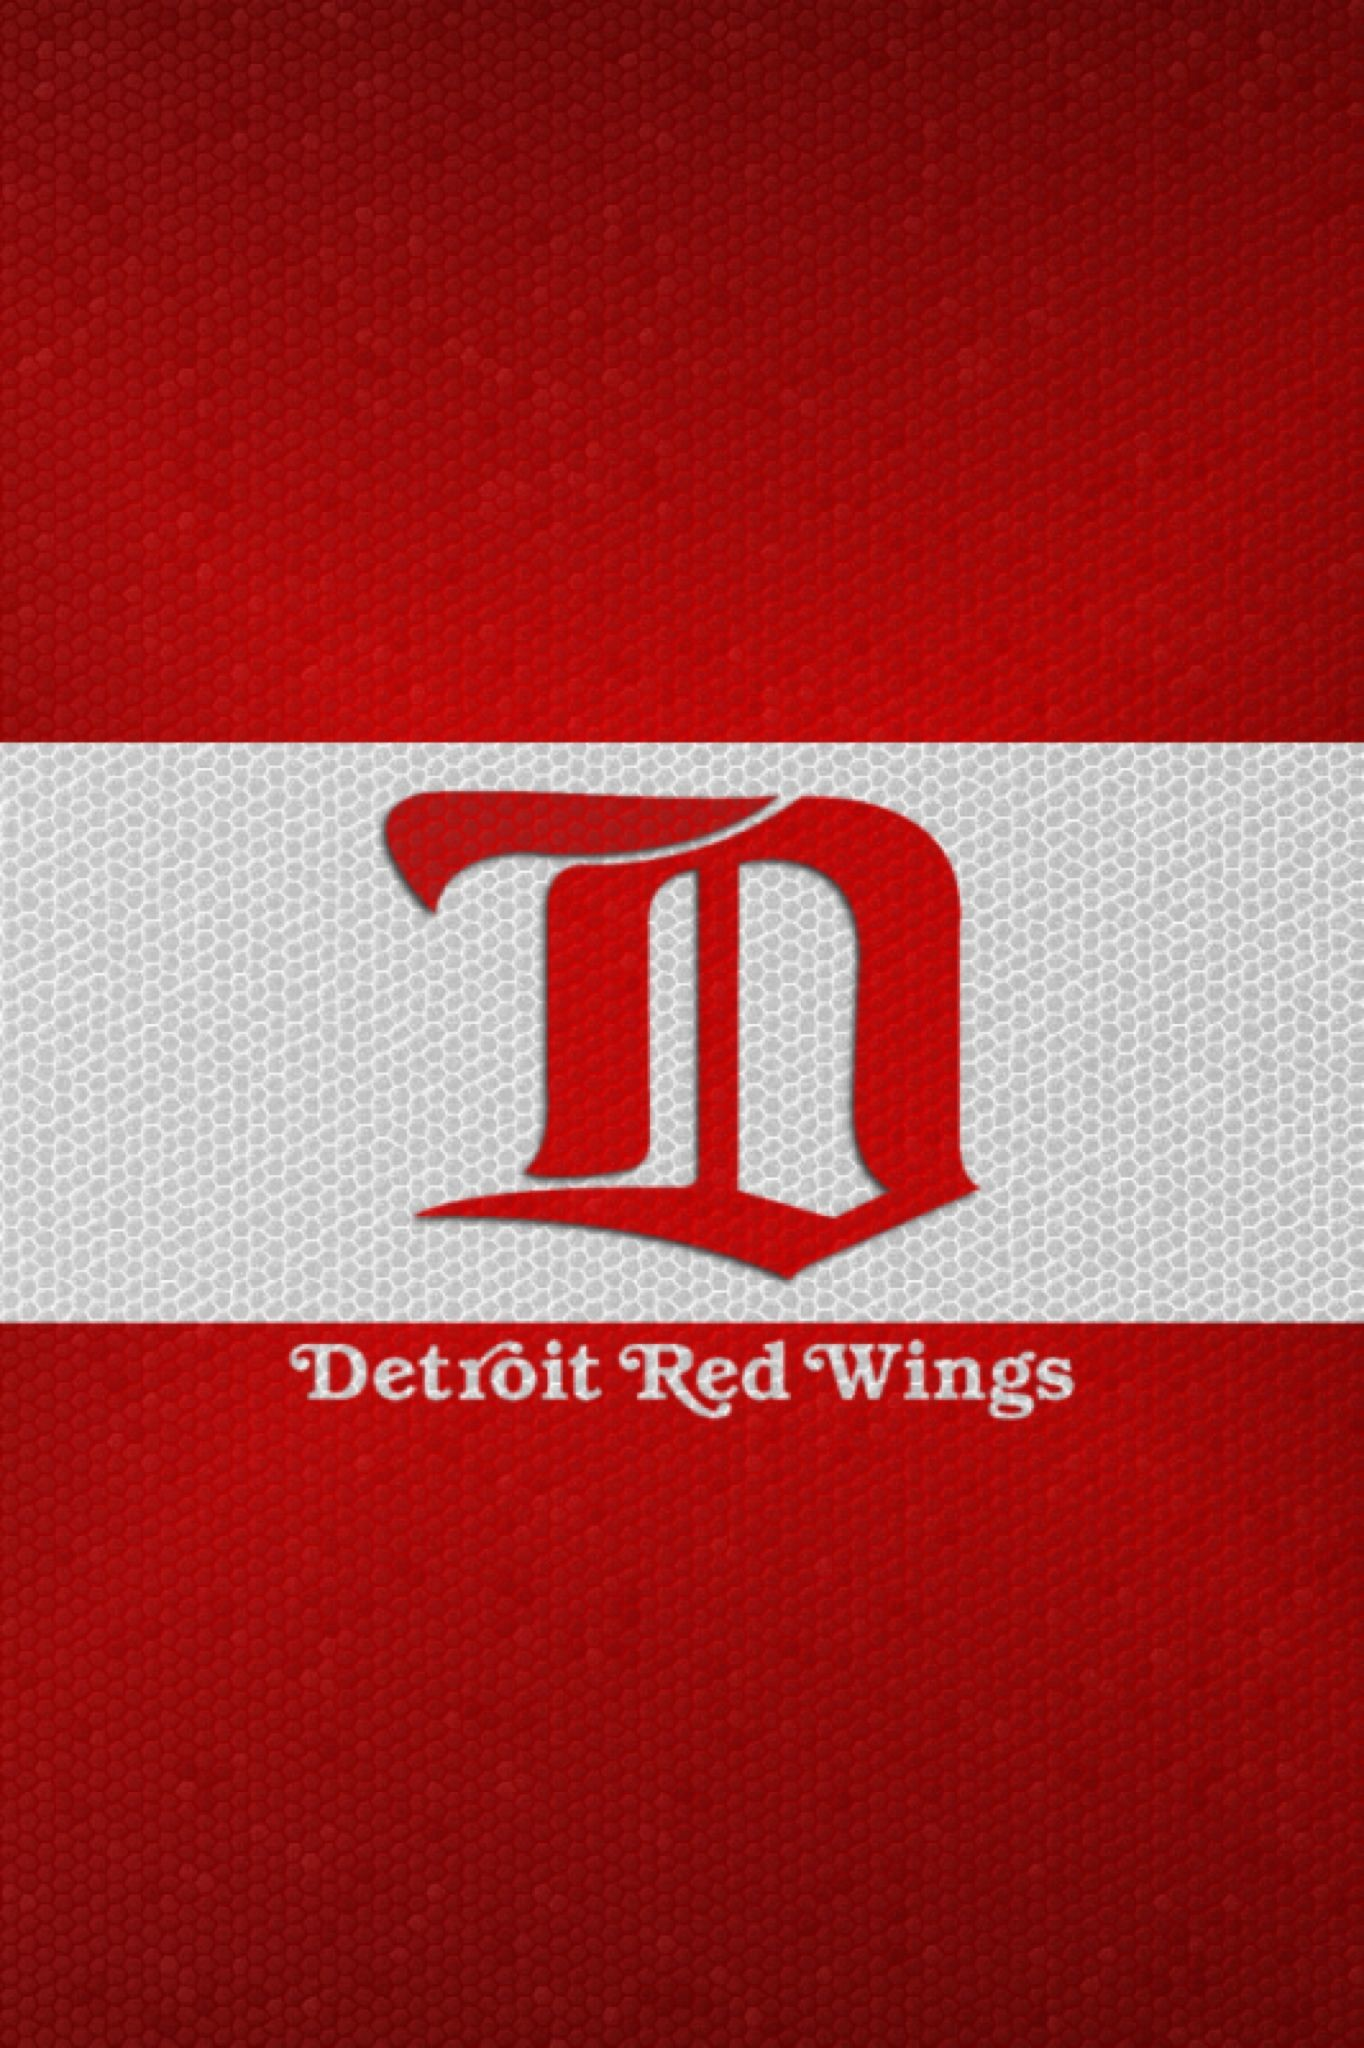 1364x2048 Nice iPhone (4/4s size) Detroit Red Wings wallpaper (Winter Classic D) ...